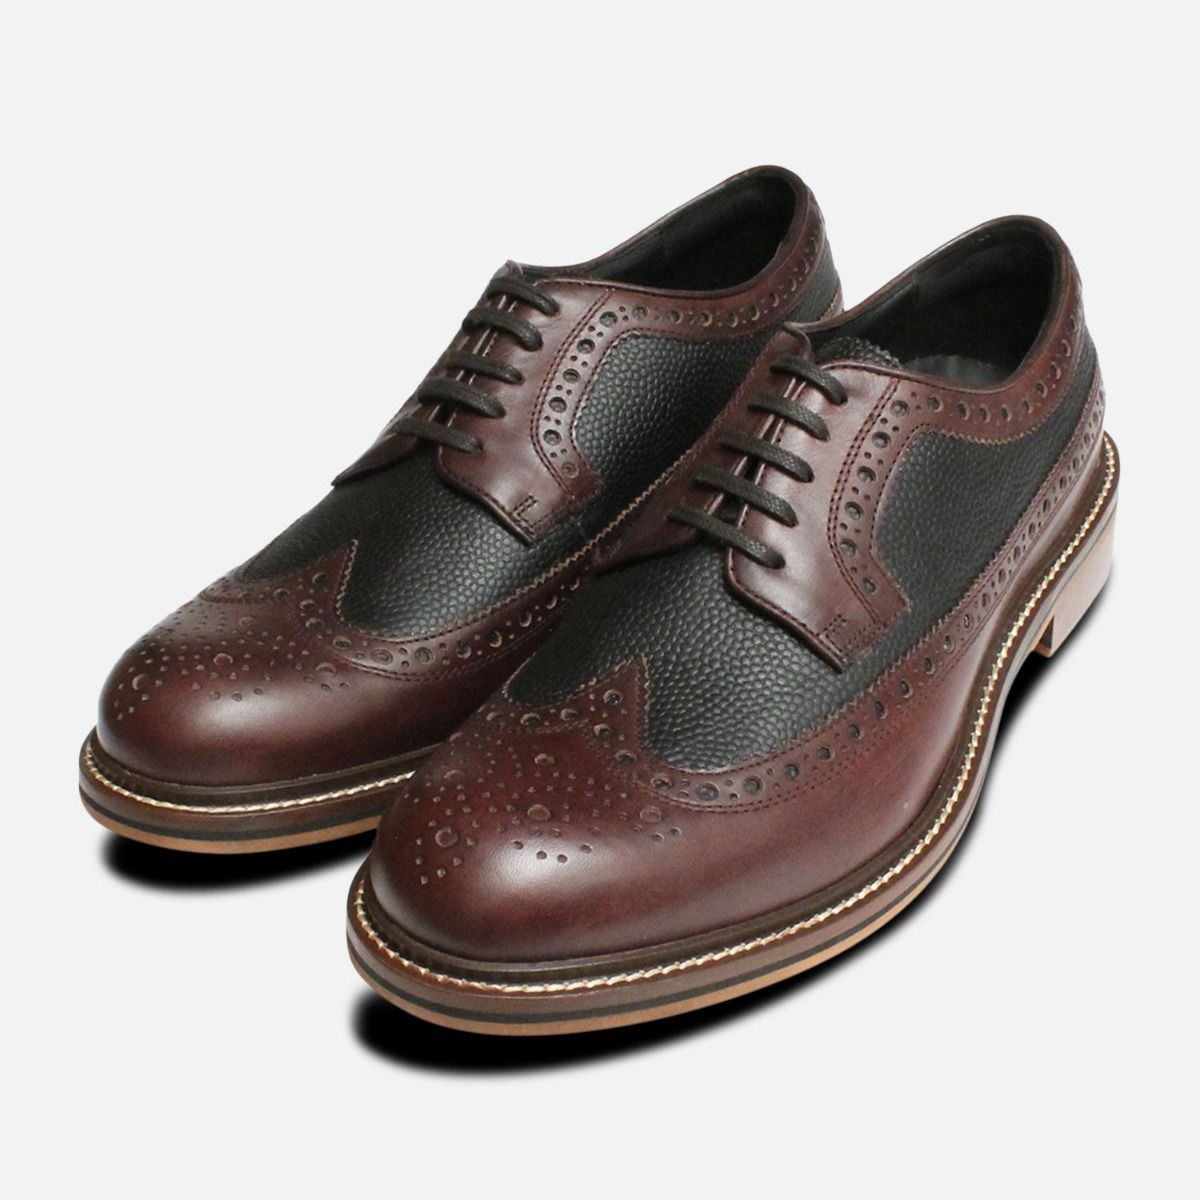 good service outlet store well known Thomas Partridge Two Tone Brown Wingtip Brogues